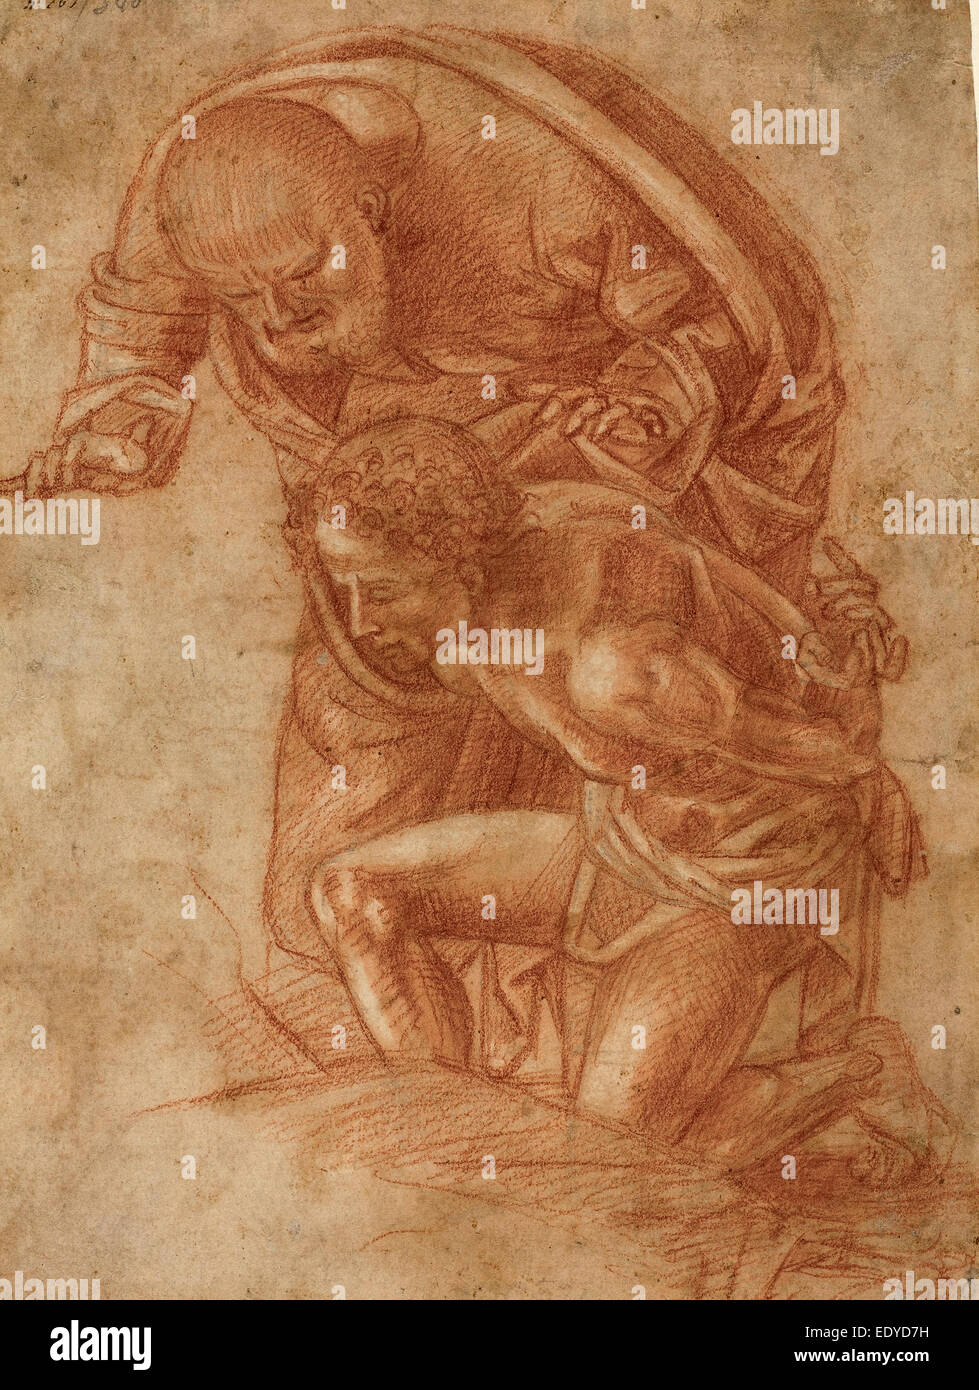 Workshop of Luca Signorelli, The Sacrifice of Isaac, c. 1500, red chalk with white heightening on laid paper - Stock Image